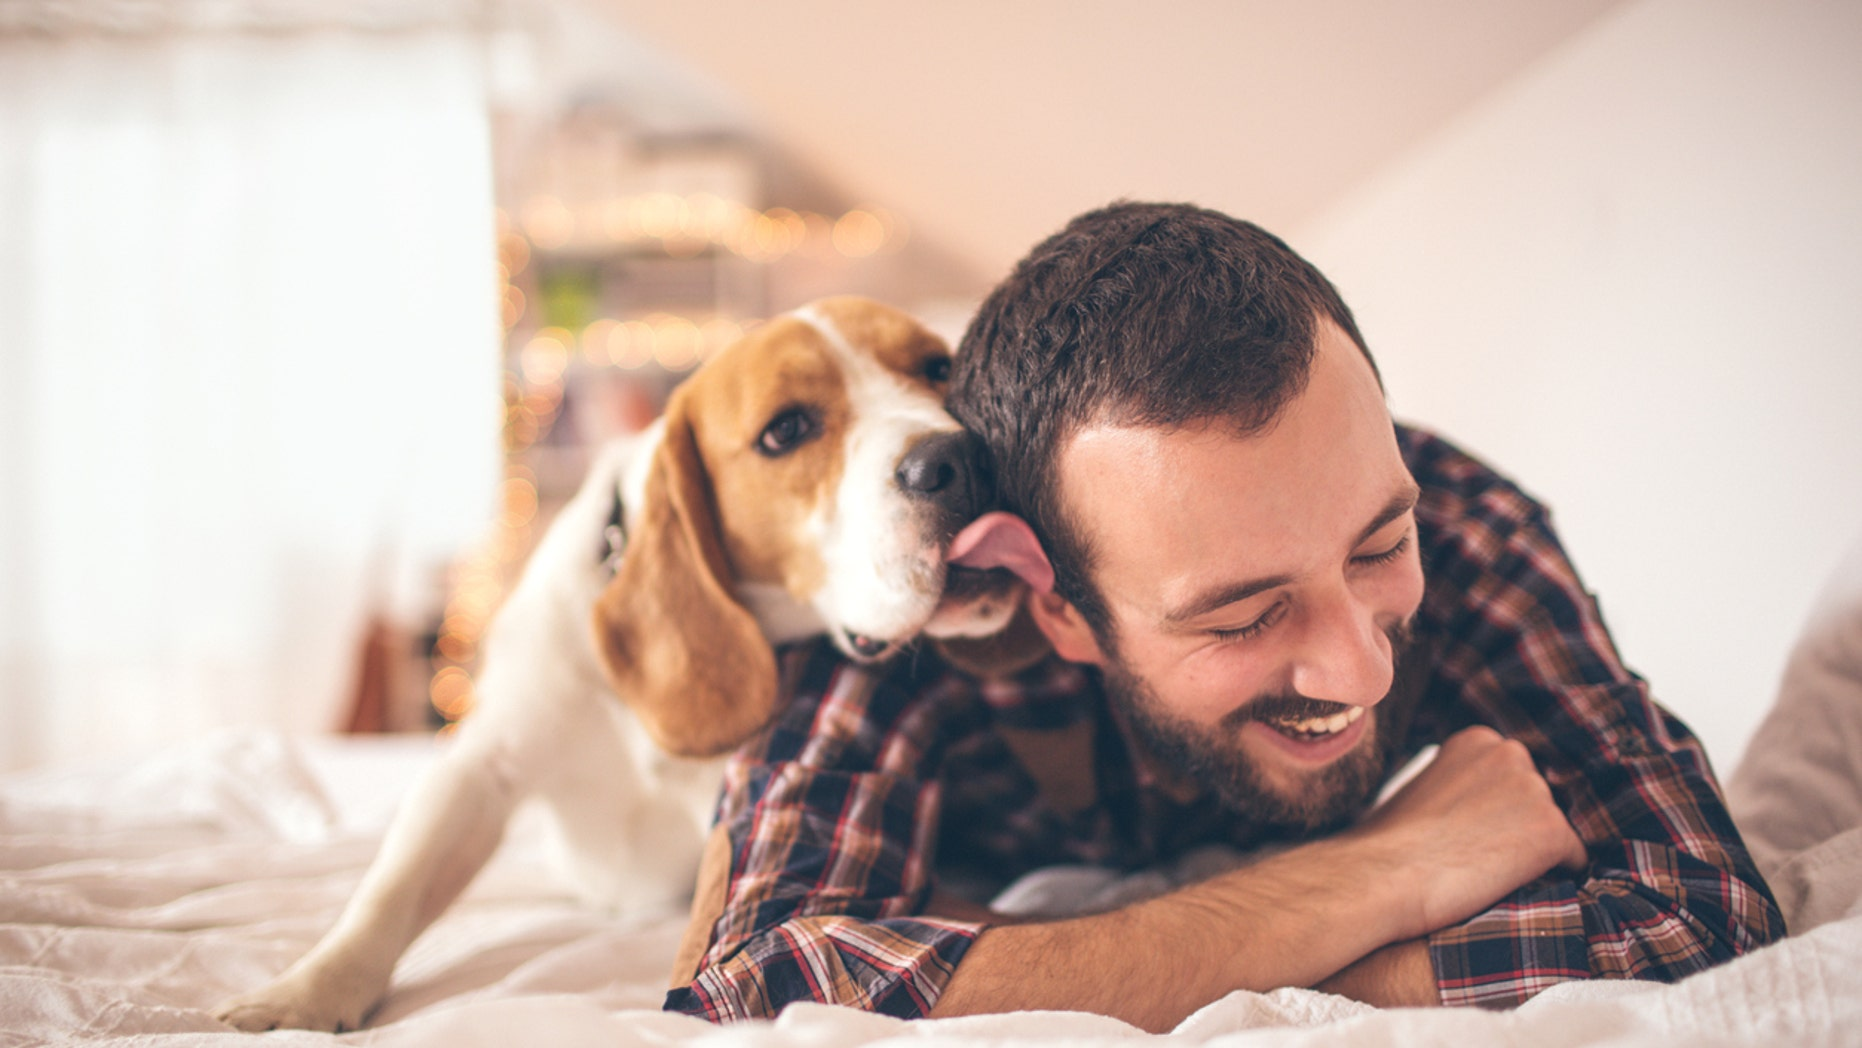 Owning dog can help boost your health in more ways than one.